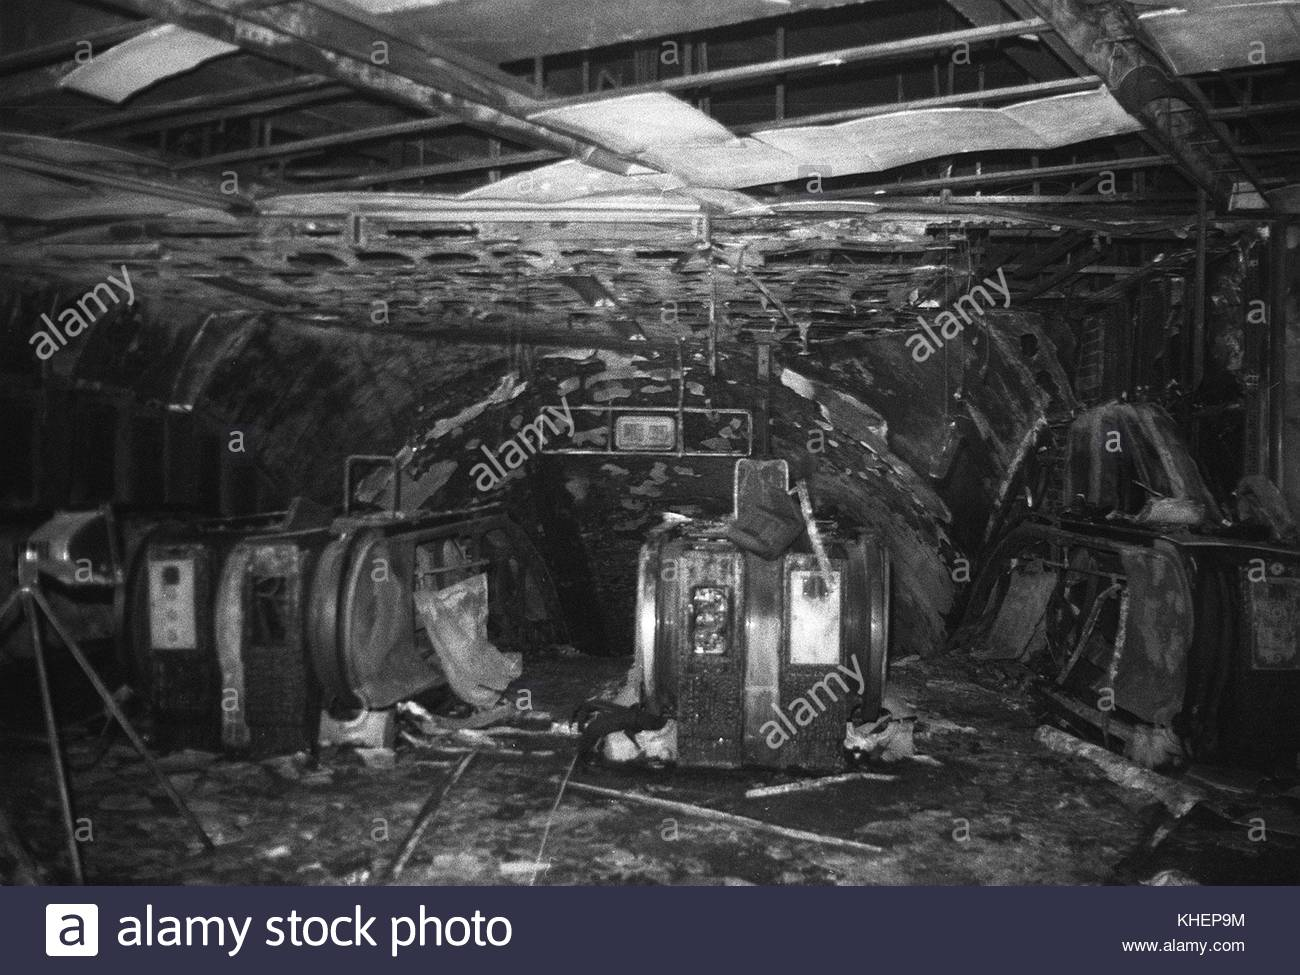 Embargoed to 0001 Friday November 17 File photo dated 18/11/87 of the fire-damaged escalators at King's Cross - Stock Image